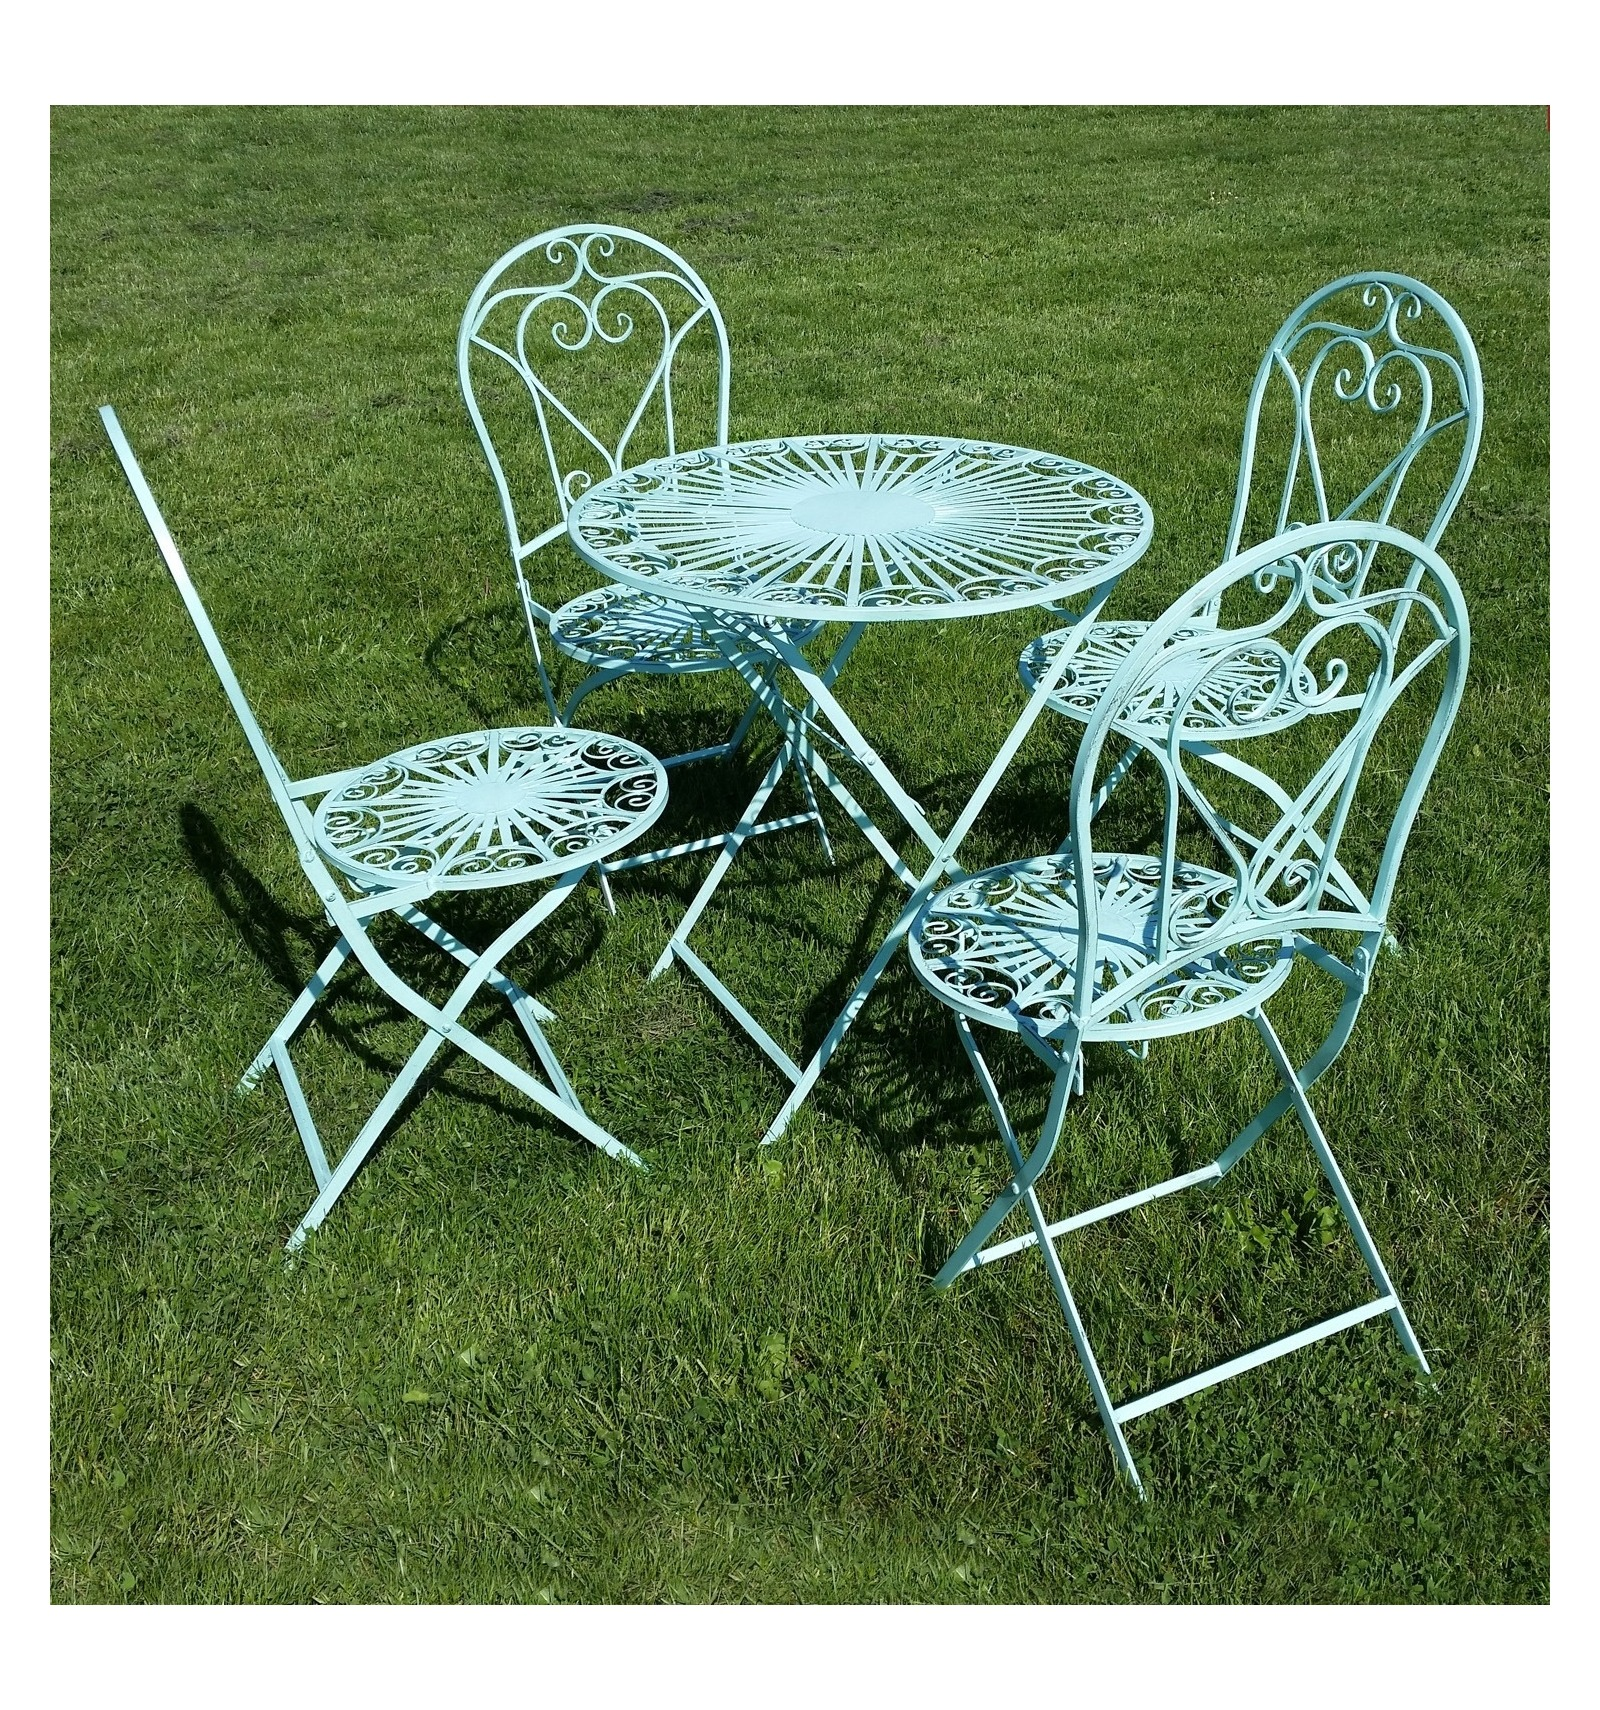 garden furniture in wrought iron a chair and a table. Black Bedroom Furniture Sets. Home Design Ideas